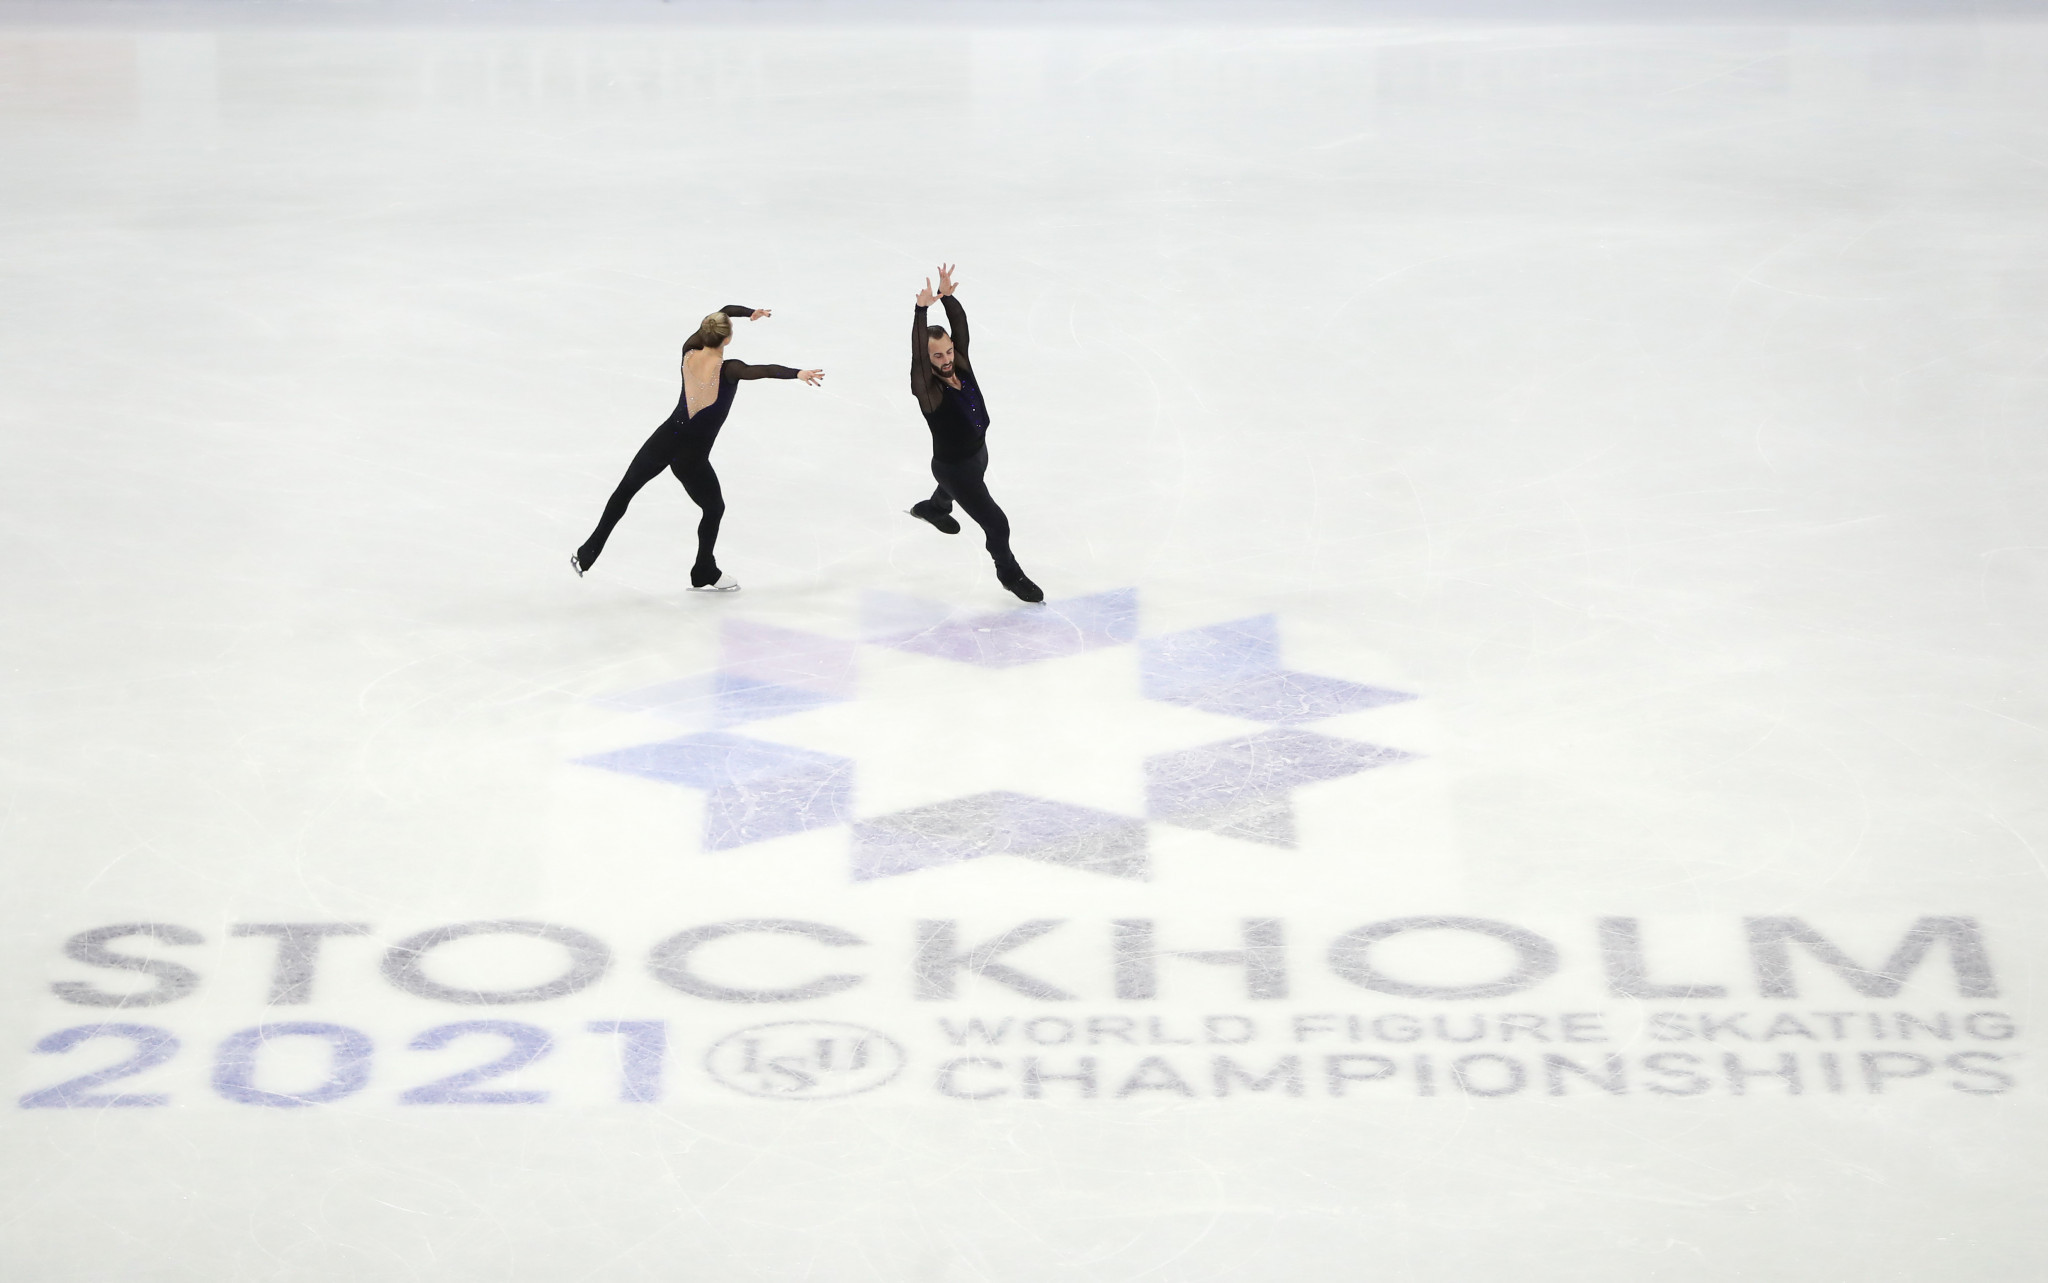 The International Skating Union has confirmed two positive COVID-19 cases at the World Figure Skating Championships in Stockholm, but says neither individual entered the bubble ©Getty Images